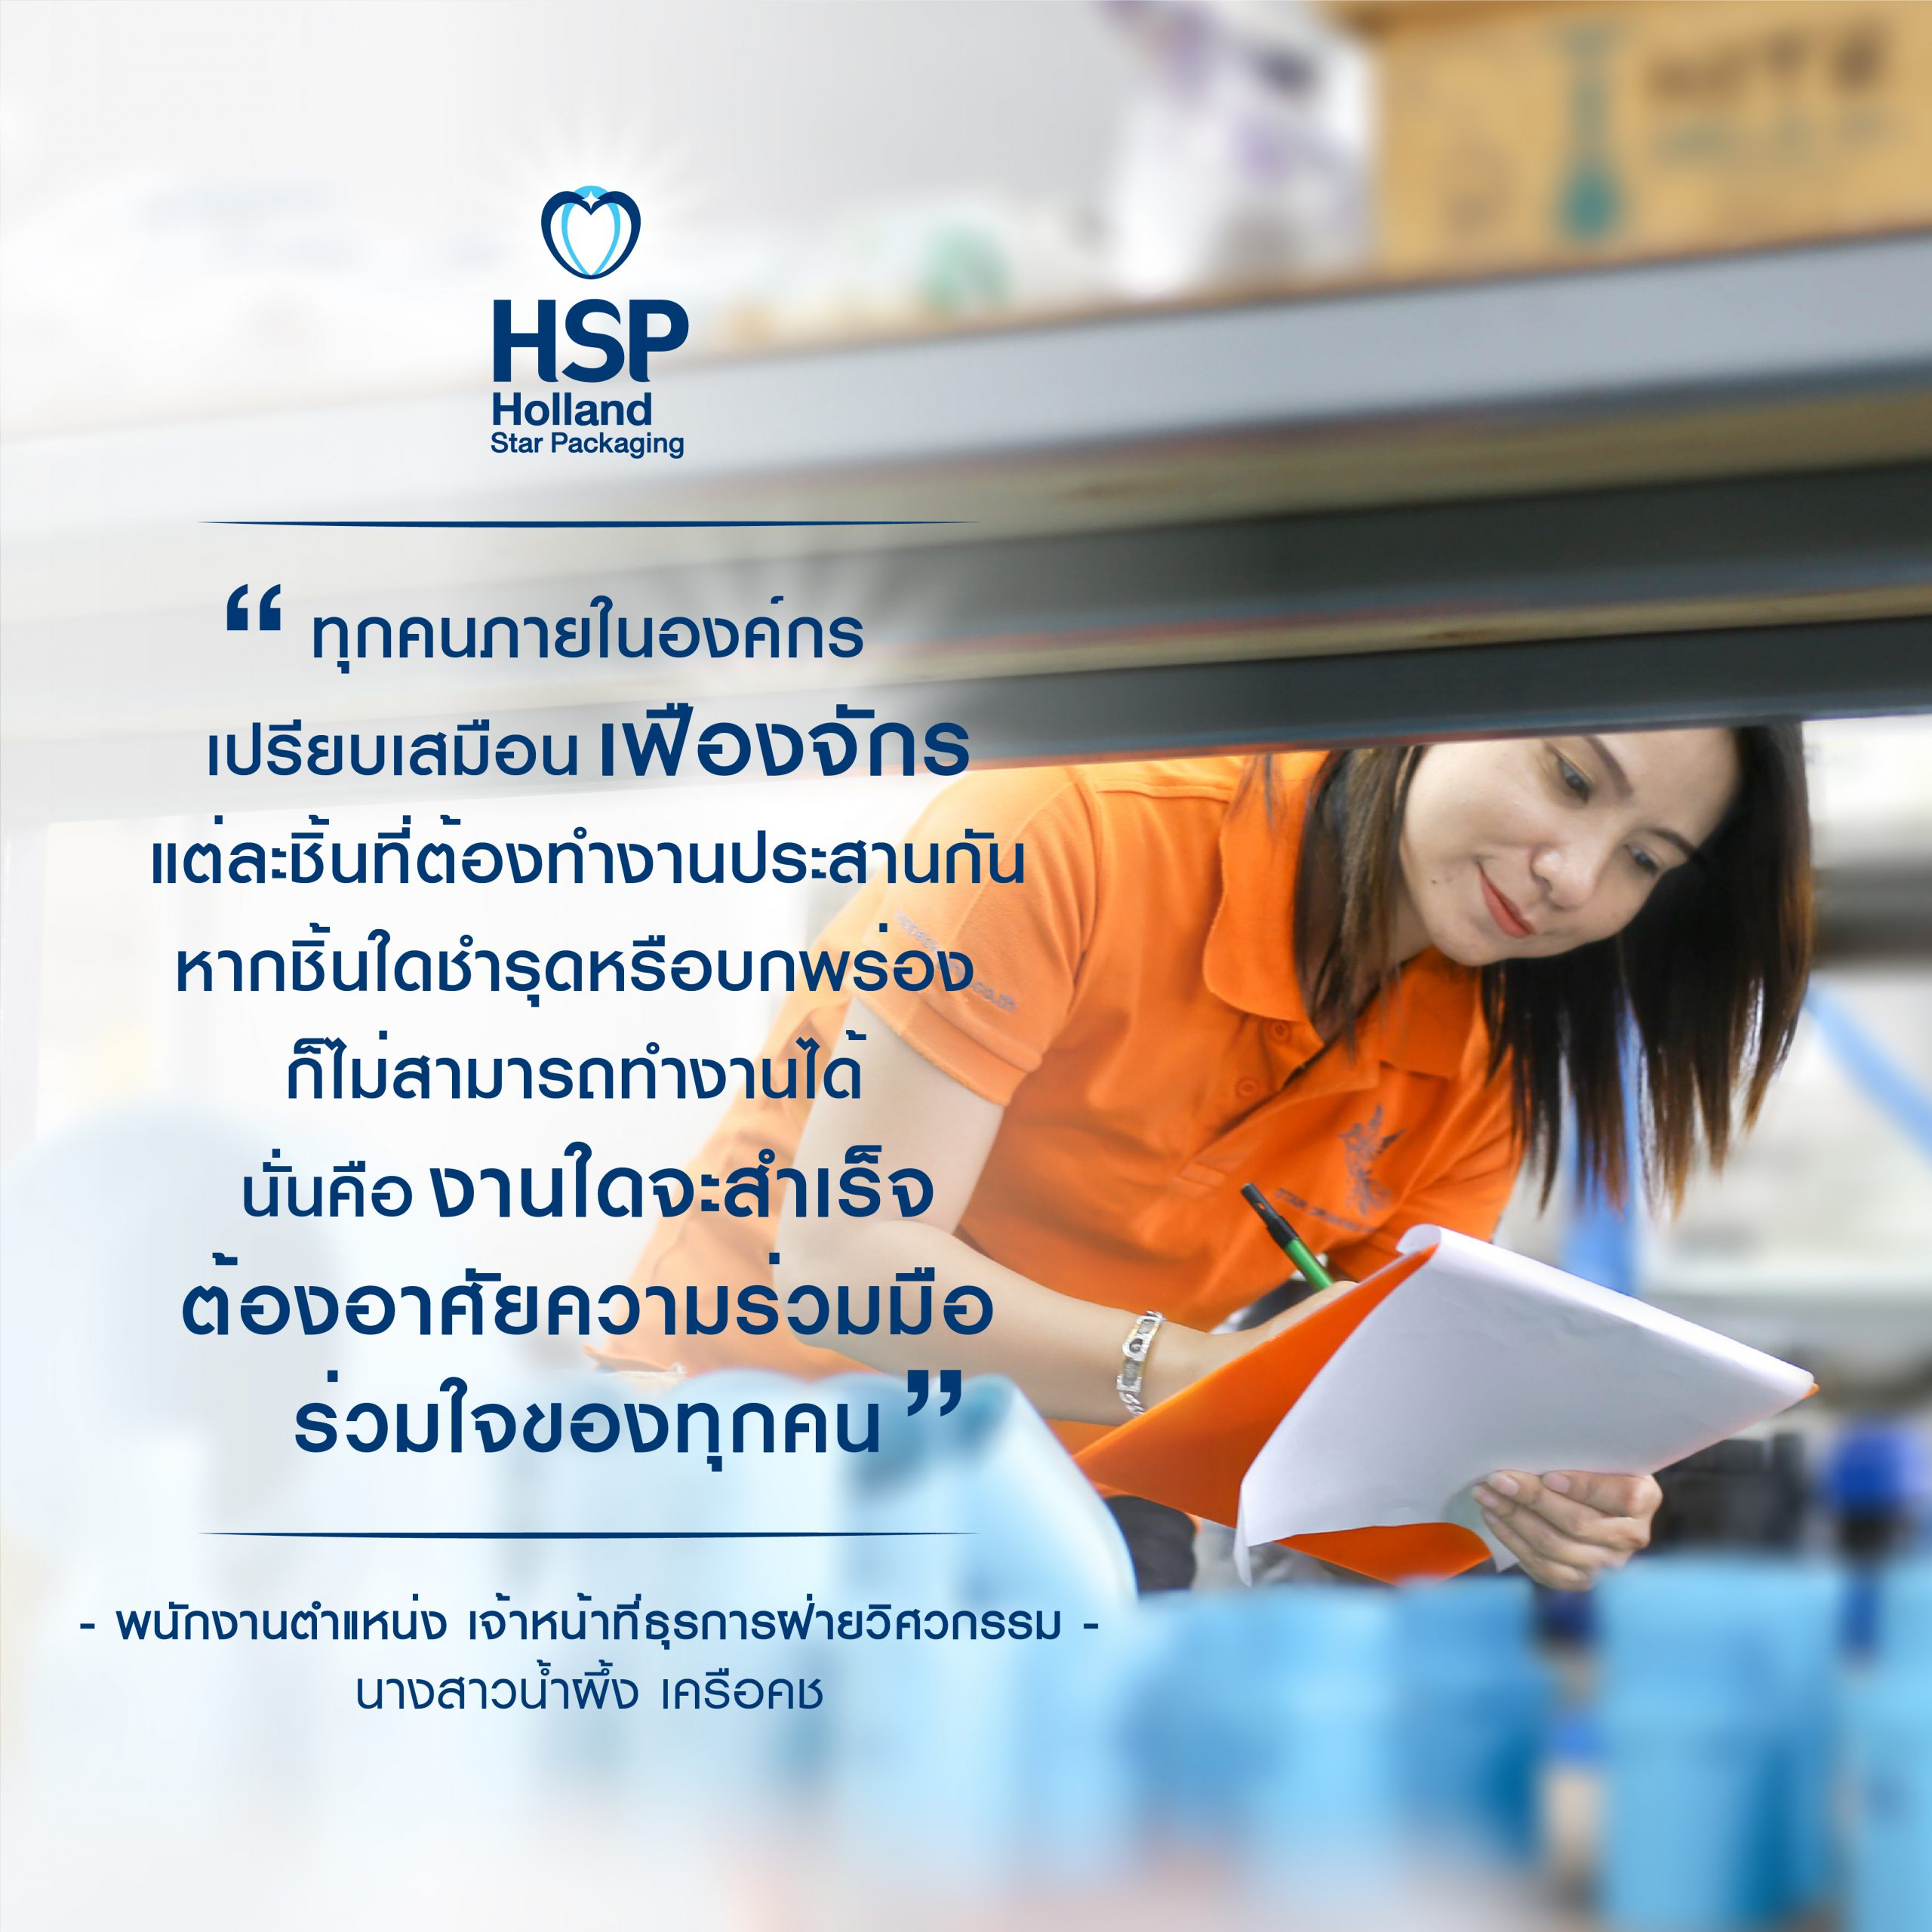 hsp-motto-29-hsppackaging-oem-water